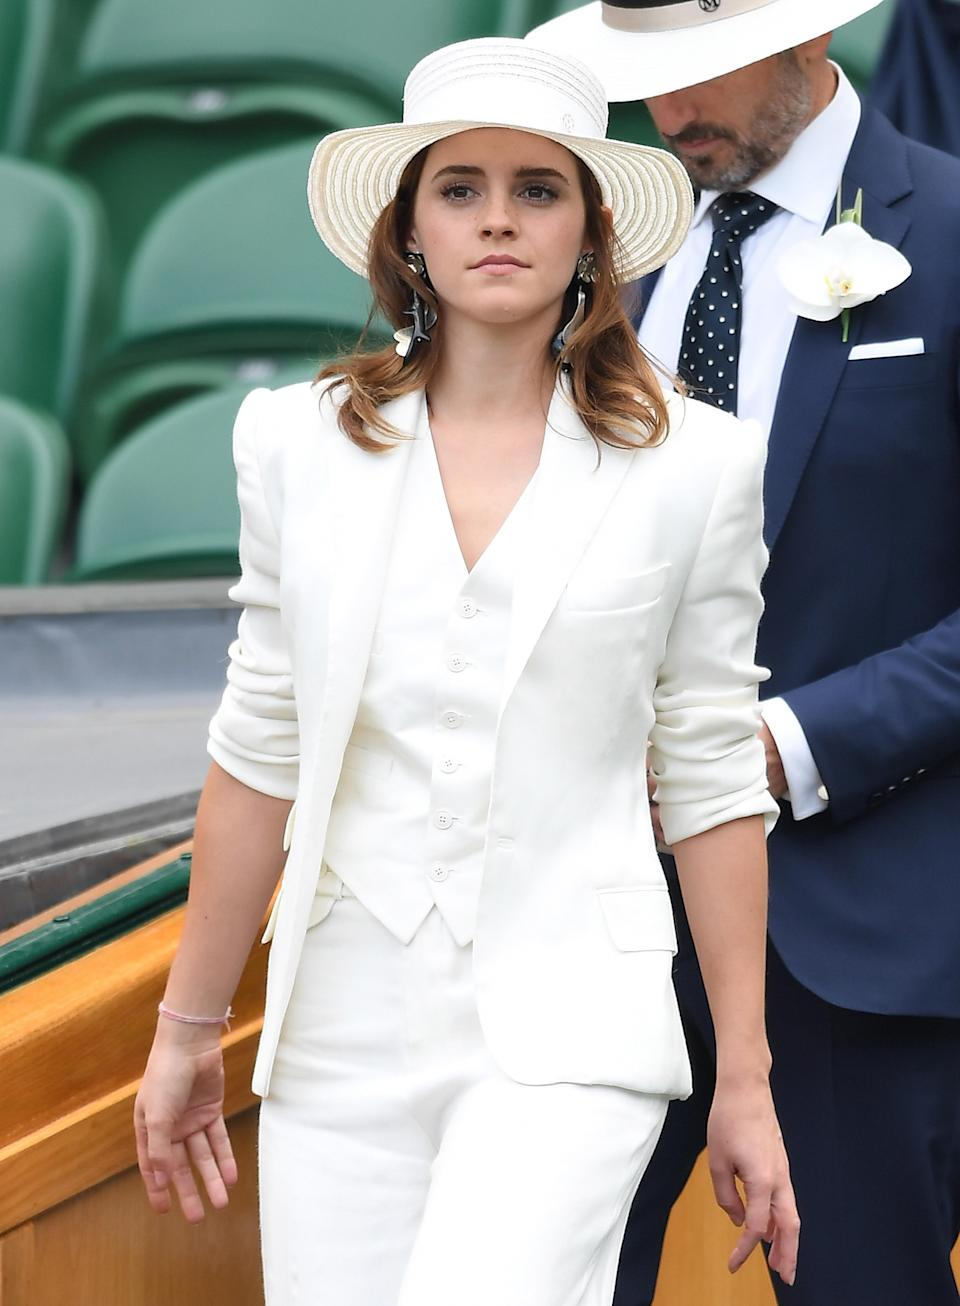 Emma Watson attends day 12 of the Wimbledon Tennis Championships at the All England Lawn Tennis and Croquet Club in London, 2018. (Photo: Karwai Tang/WireImage)